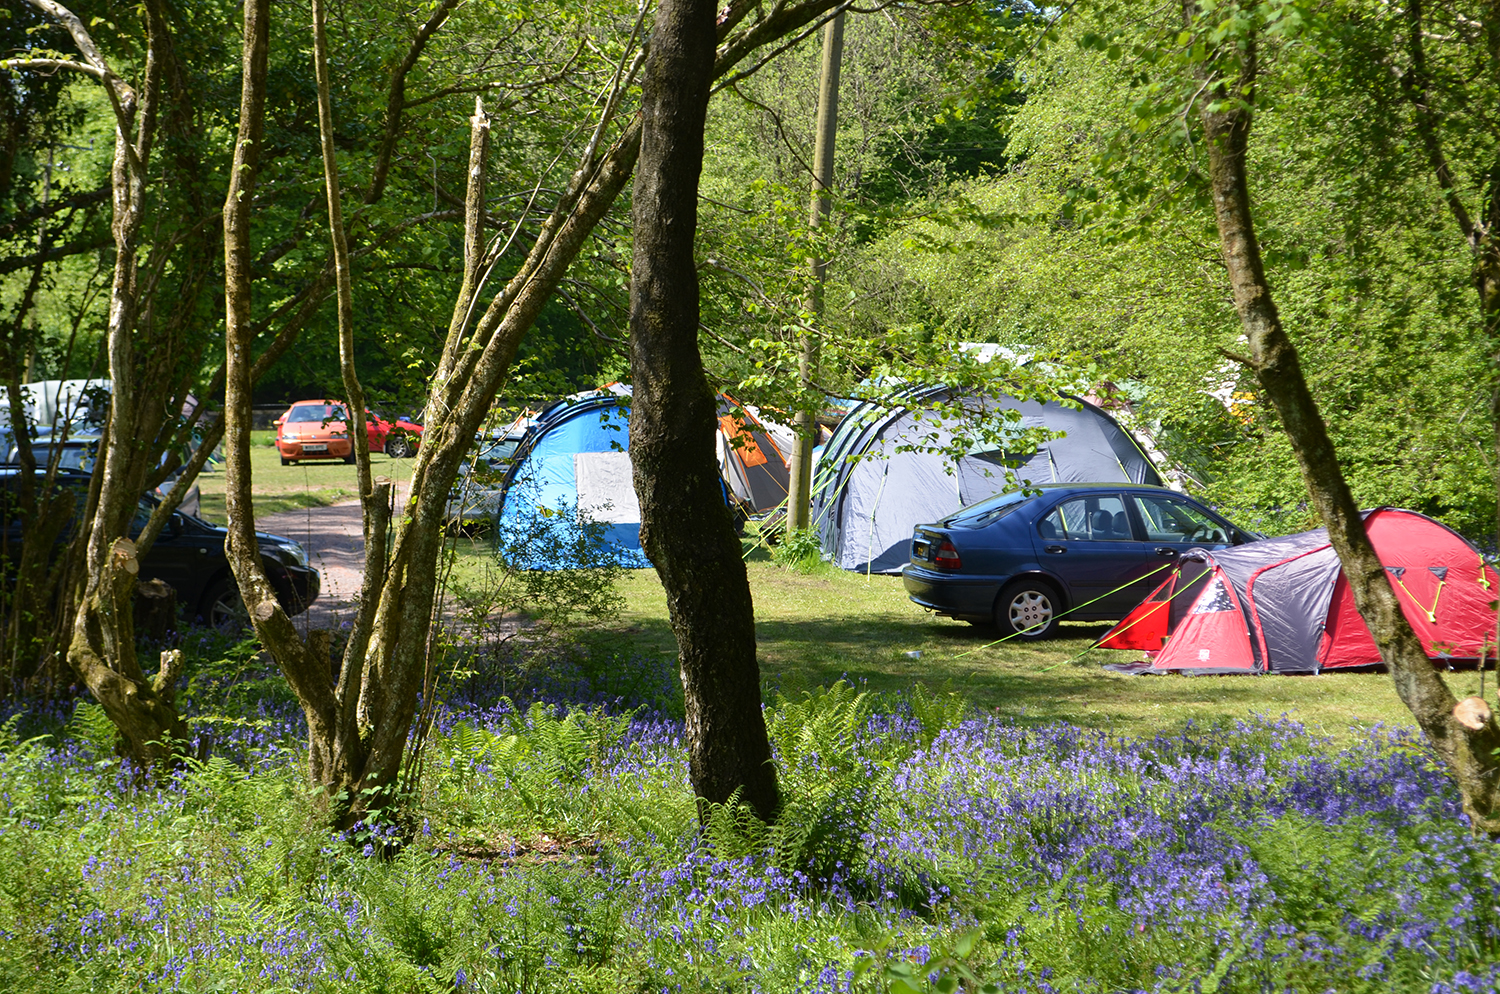 Camping in the Bluebells